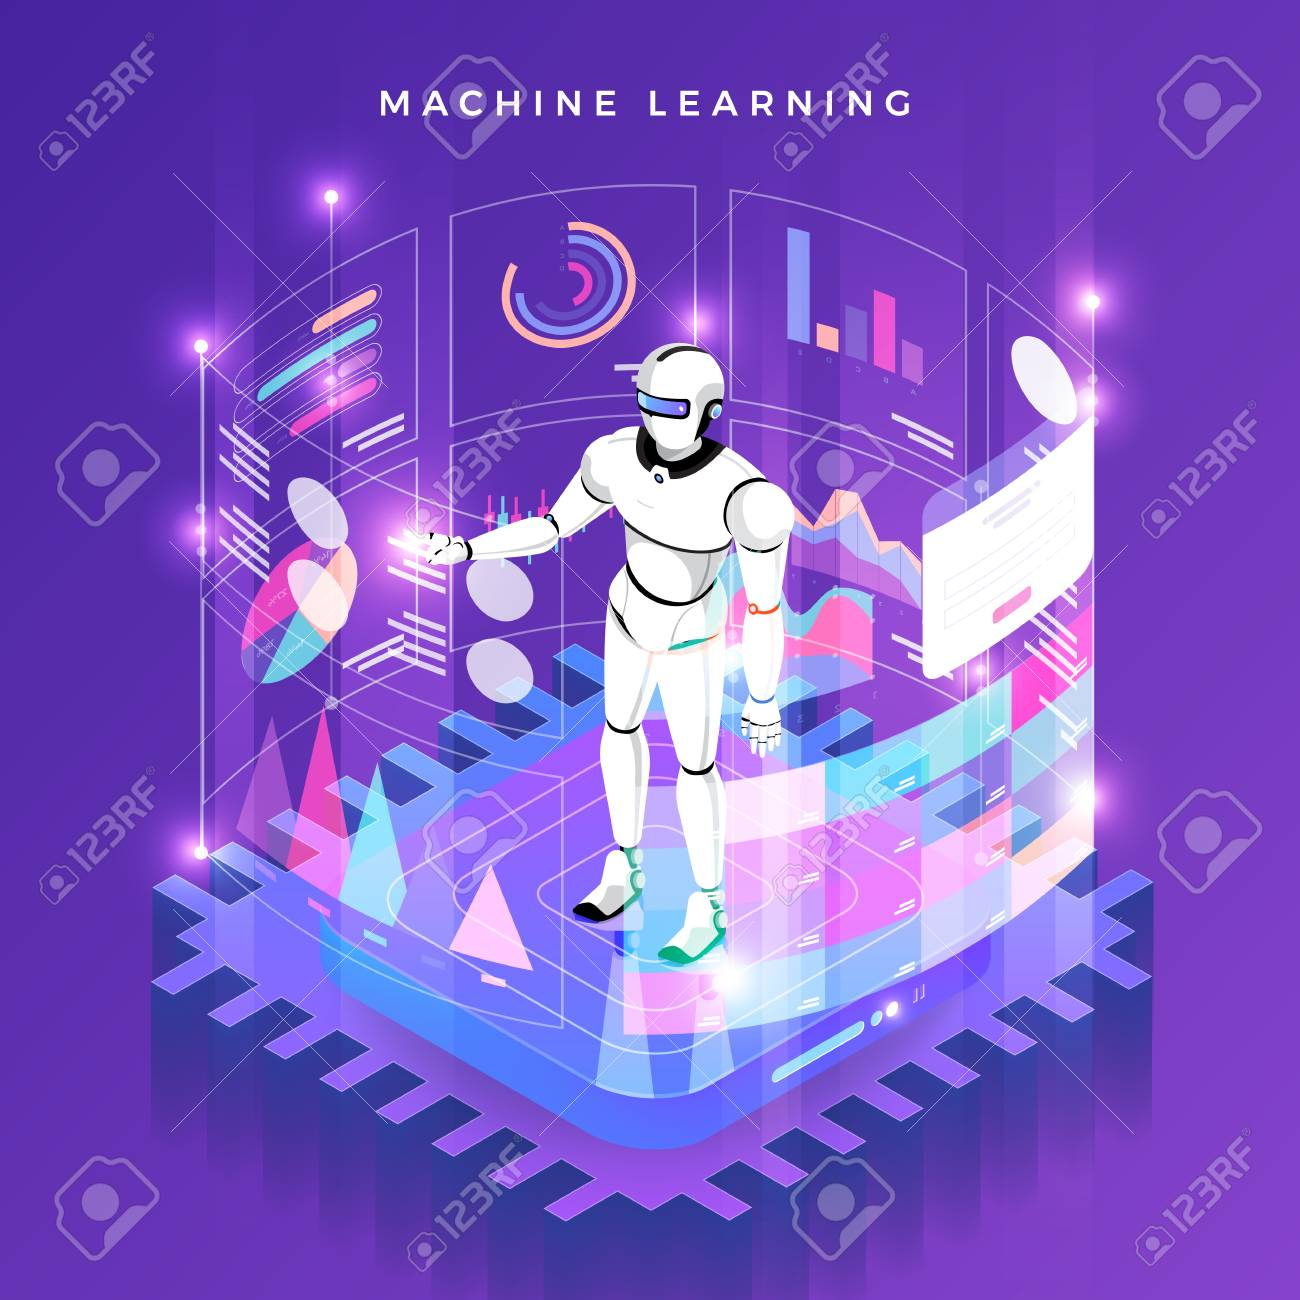 Illustrations concept machine learning via artificial intelligence with technology analysis data and knowledge . Vector isometric illustrate. - 107940537